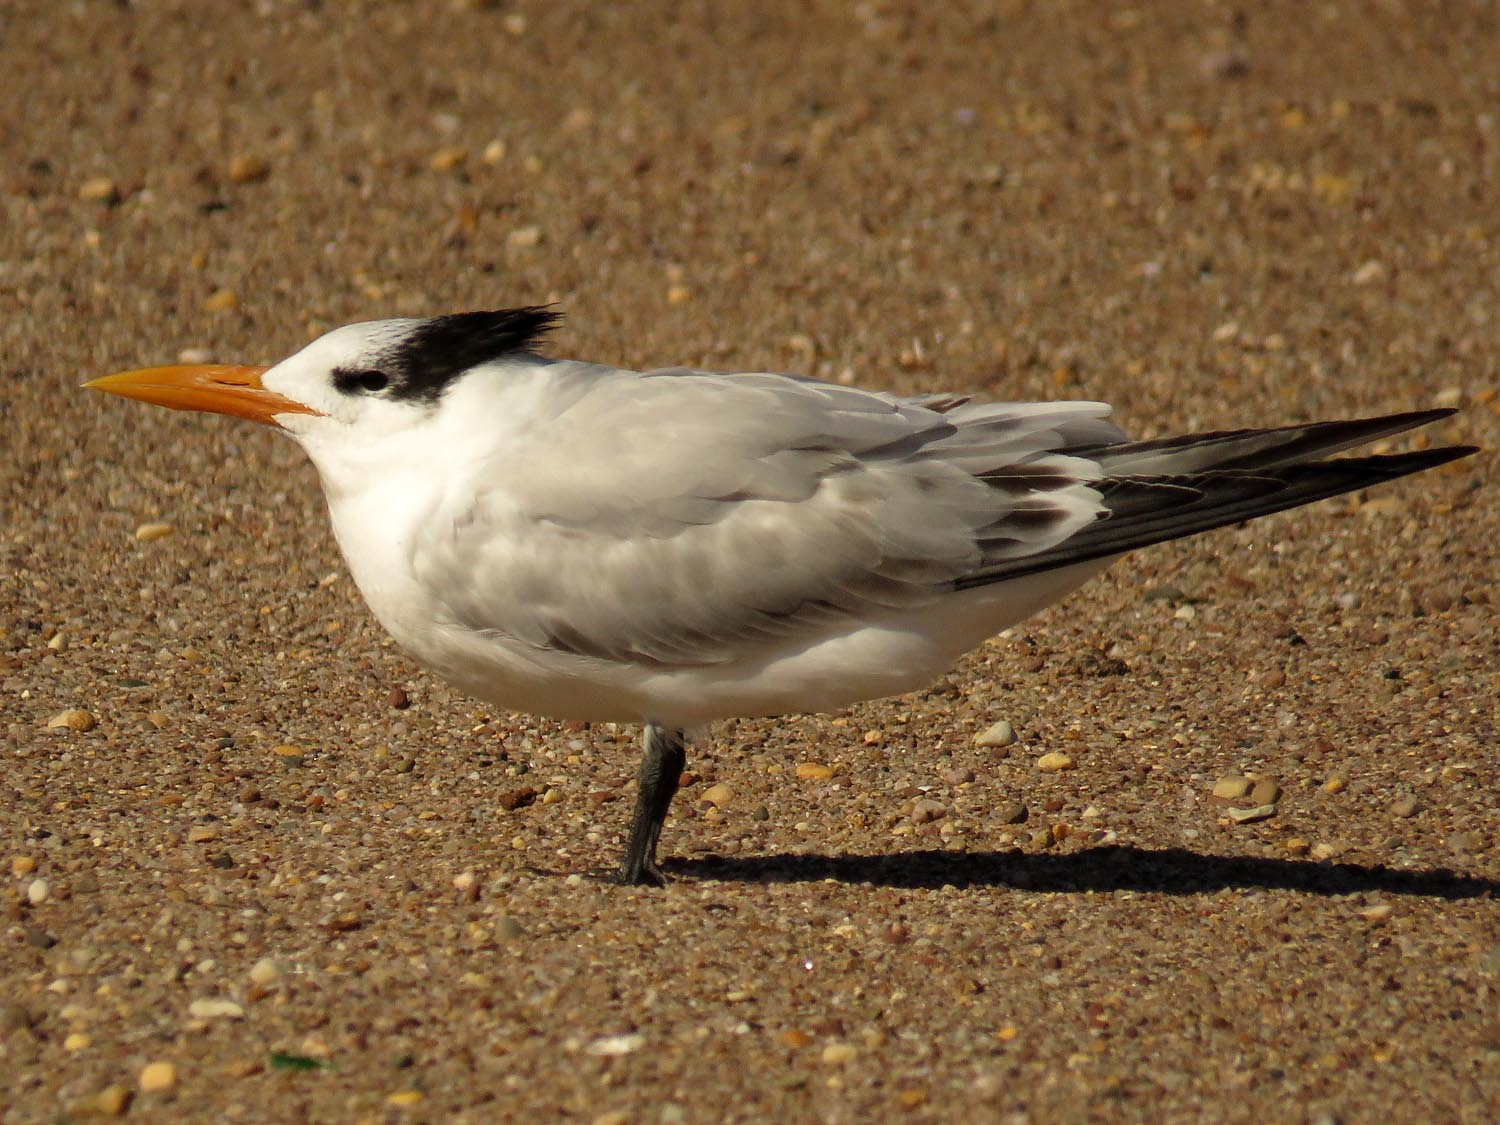 Royal tern, Midland Beach, October 31